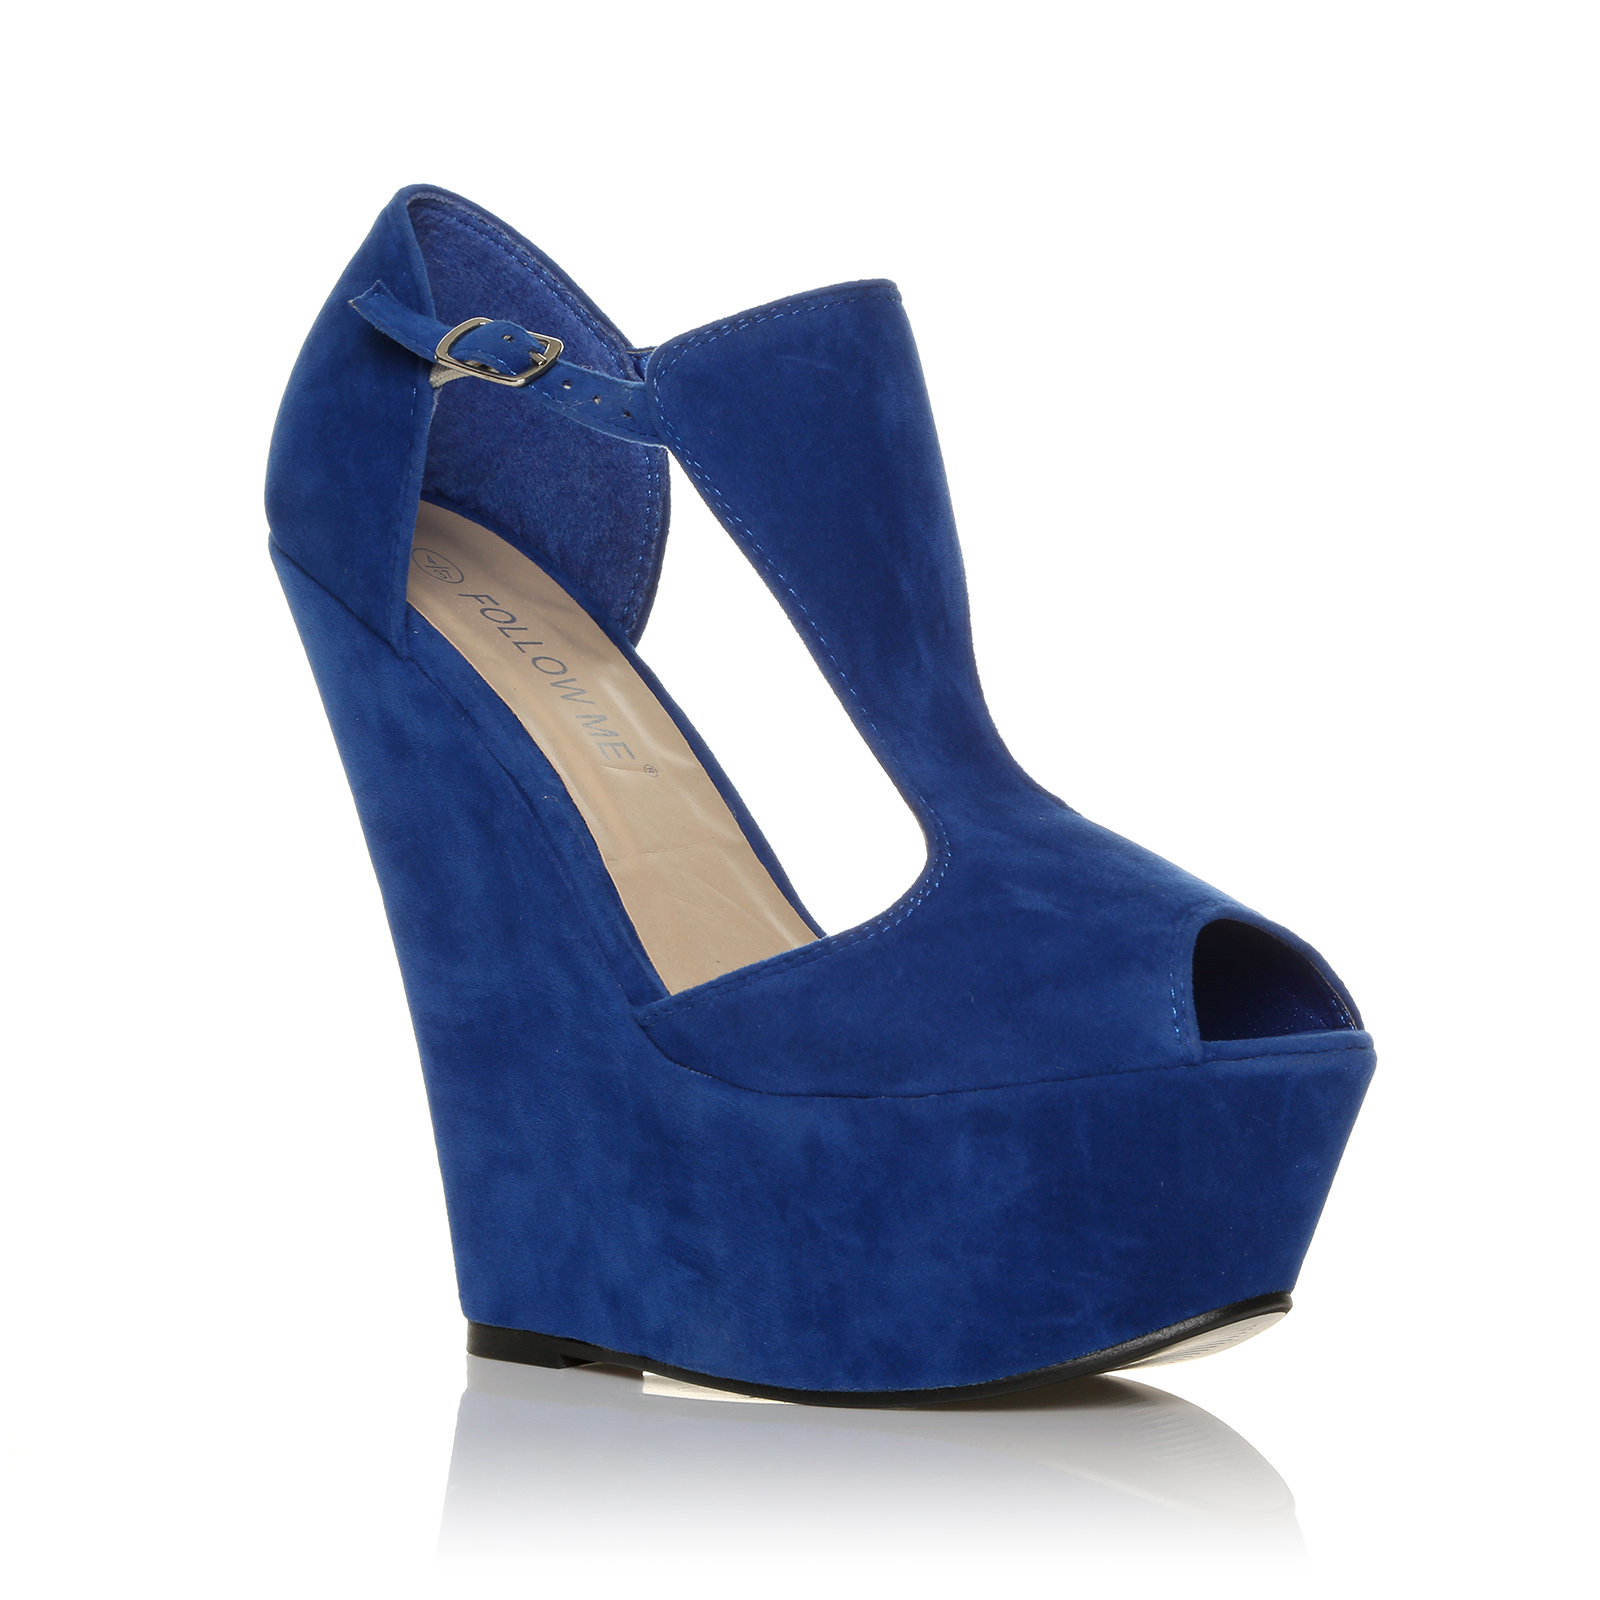 NEW-WOMEN-LADIES-FASHION-HIGH-HEEL-WEDGES-PARTY-PLATFORM-SHOES-SIZE-3-8